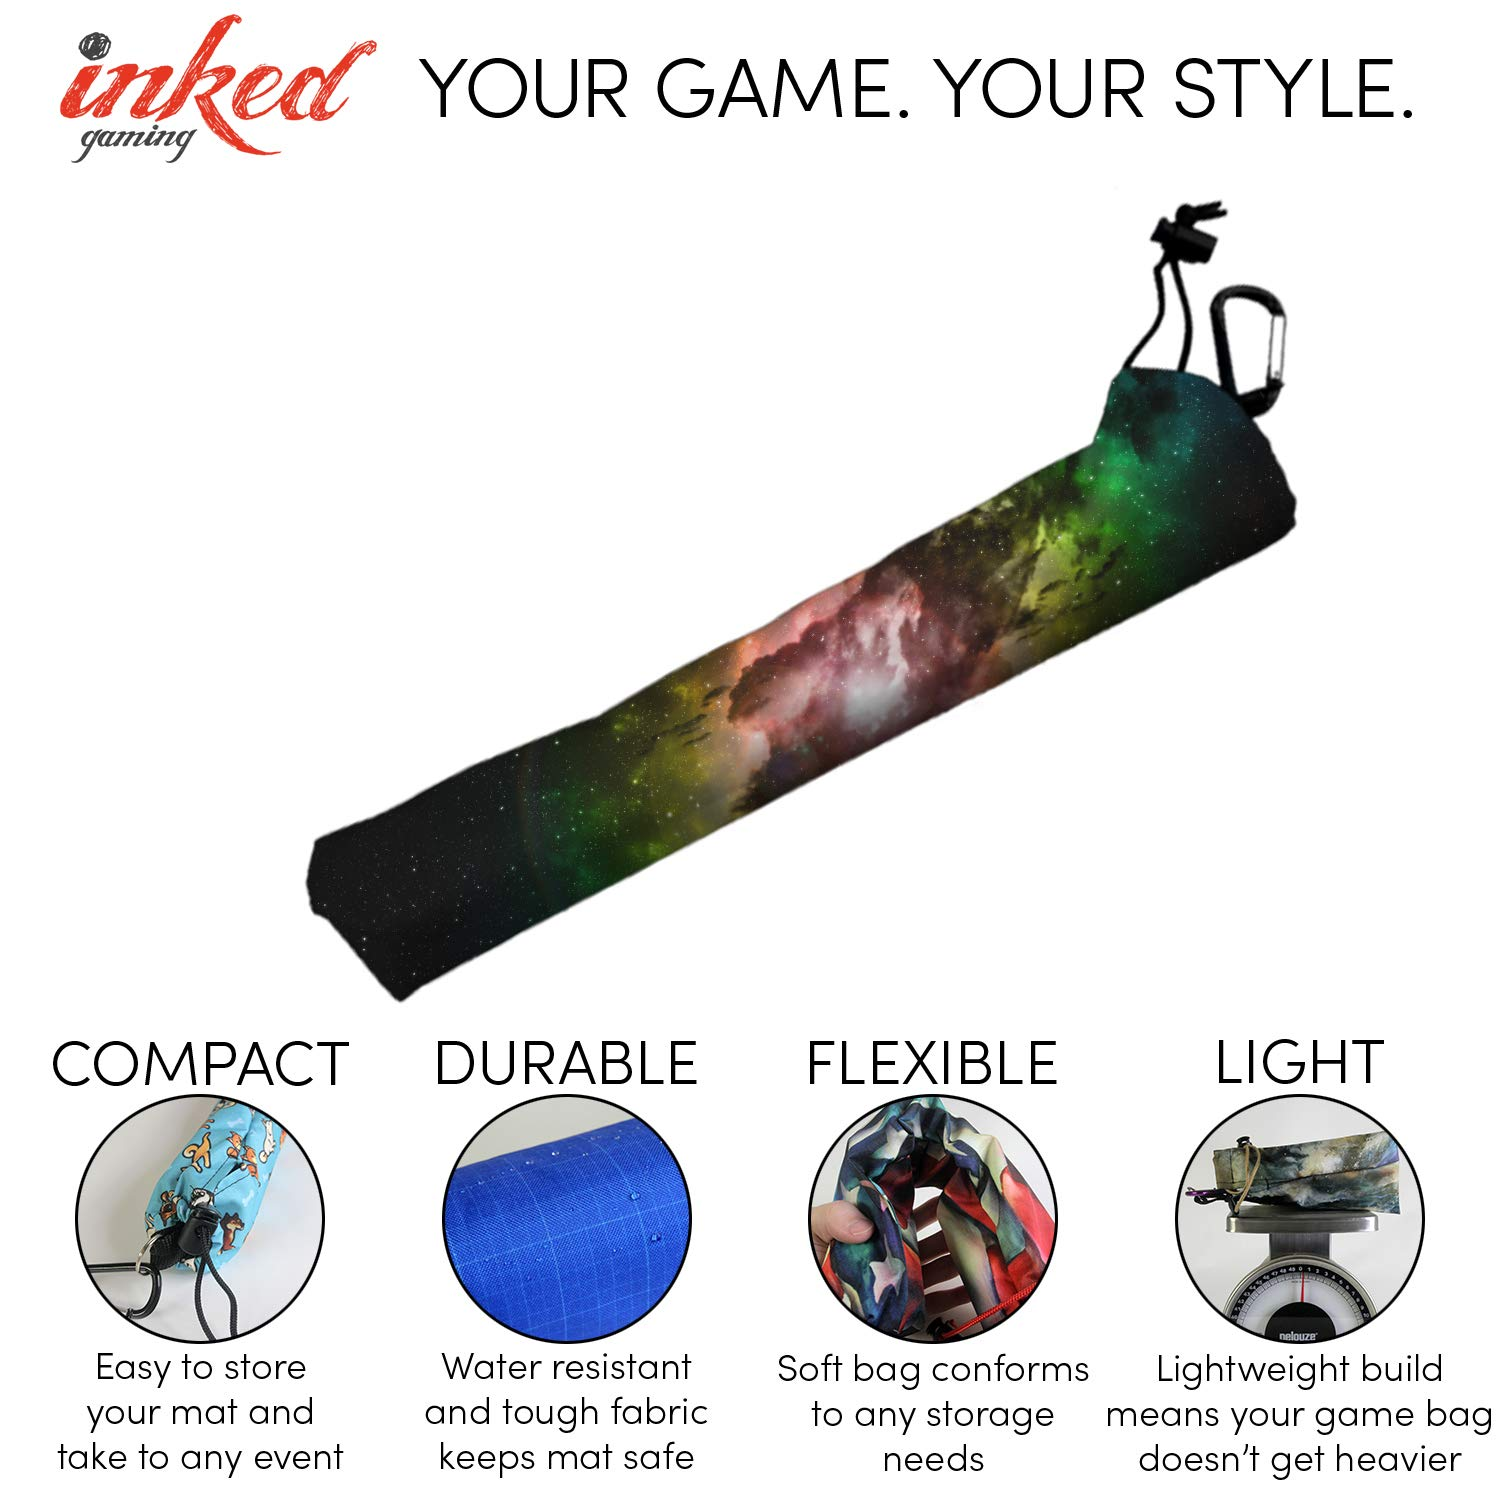 Vibrancy Playmat Bag Carrying Case by Inked Gaming Playmat Sold Separately Perfect for TCG Card Gaming Magic The Gathering and Yu-Gi-Oh Playmat Tube Playmat Case